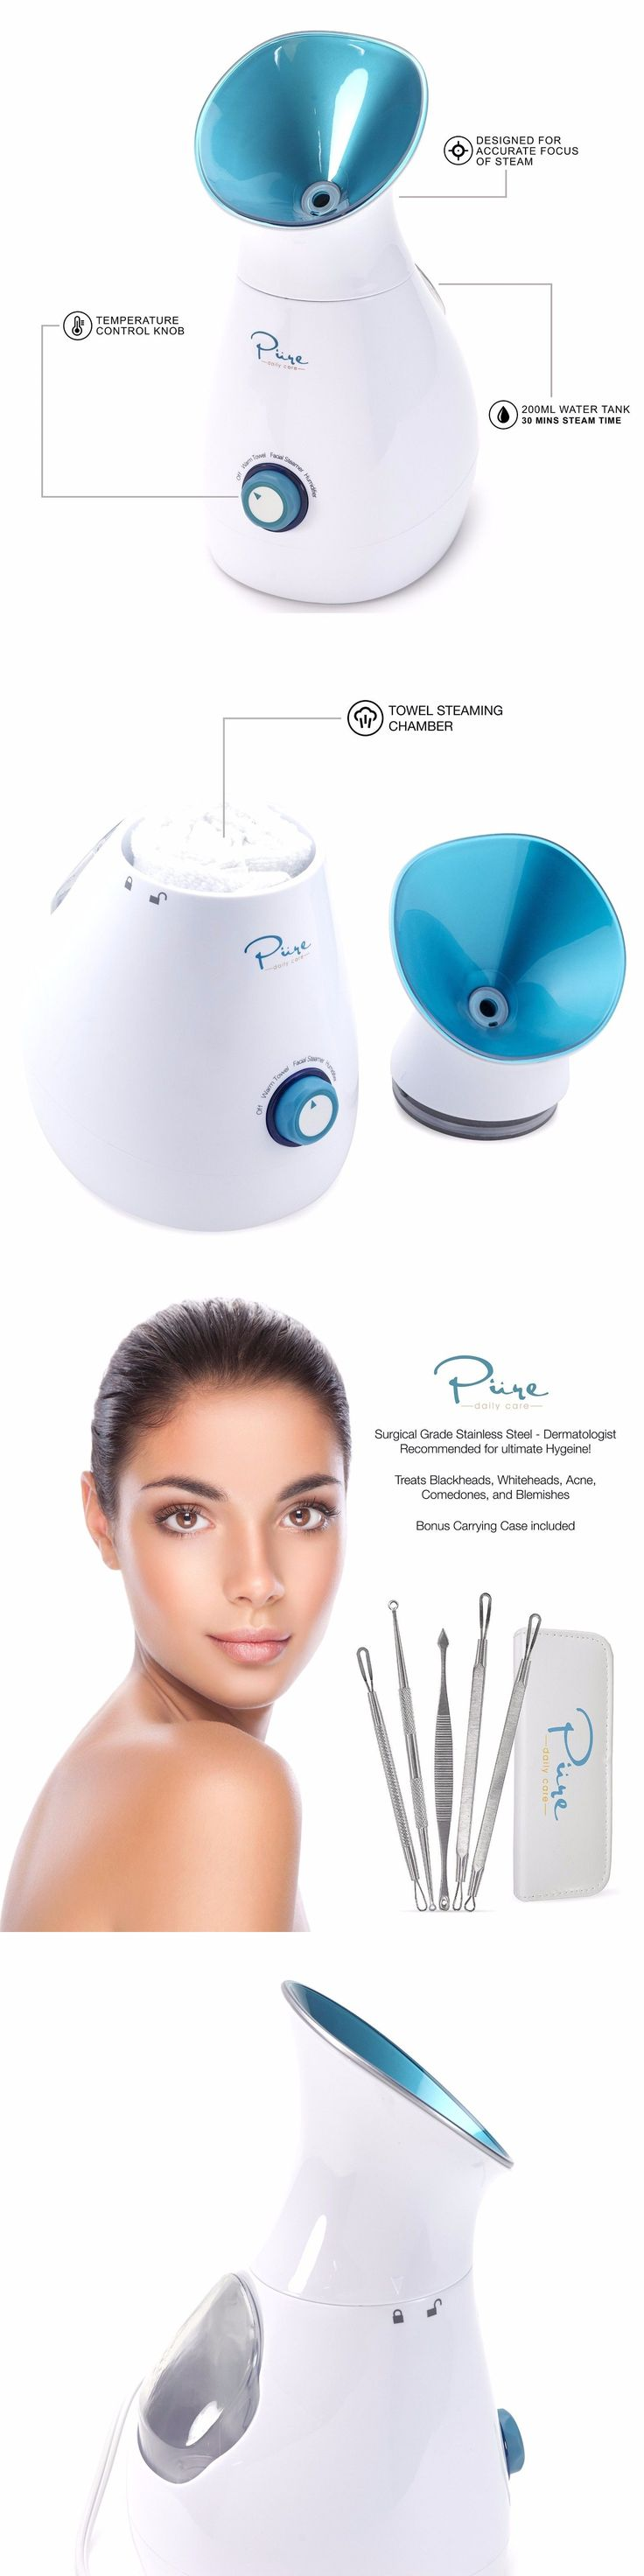 Professional Facial Machines: Facial Skin Steamer Nano Ozone Machine Portable Spa With Temperature Contro Best -> BUY IT NOW ONLY: $74.95 on eBay!